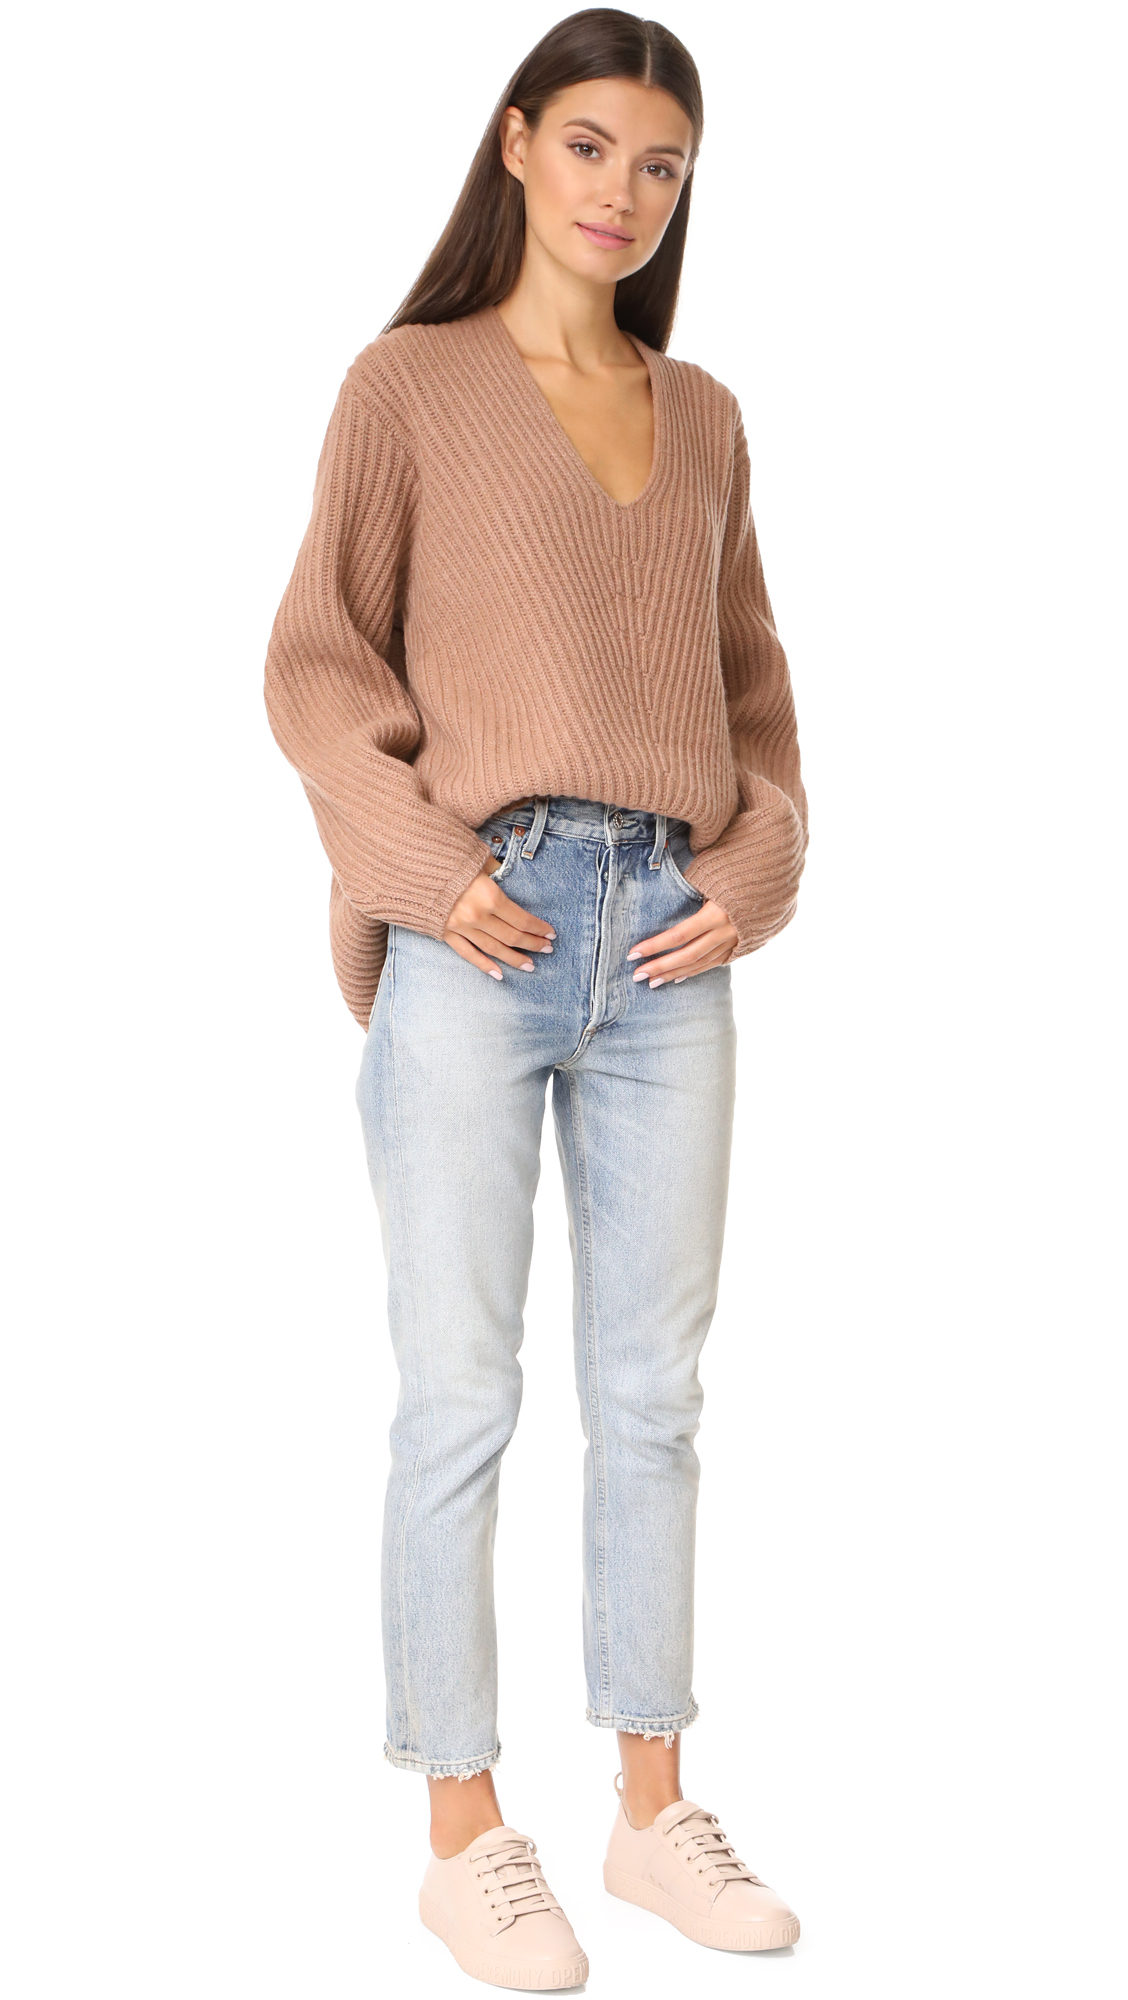 acne deborah knit